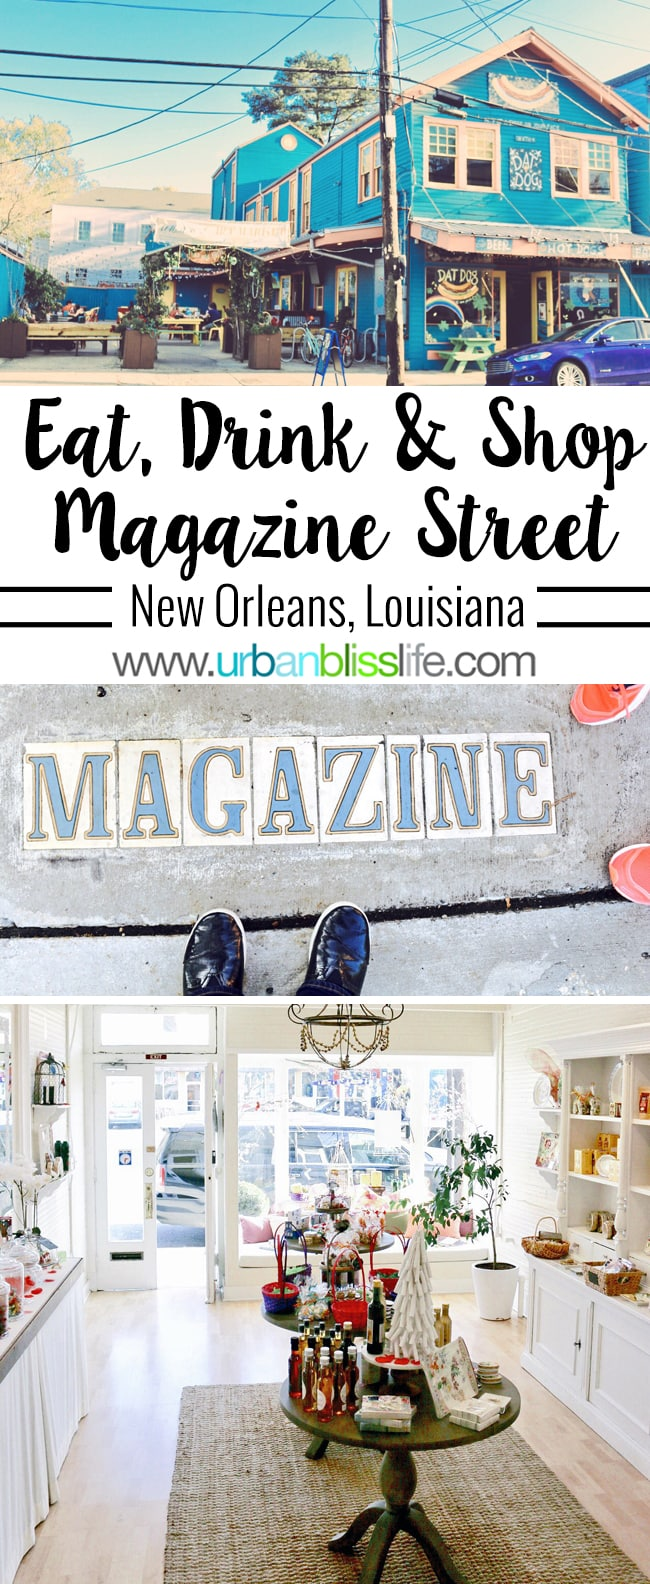 Magazine Street shopping, eating, drinking adventures in New Orleans, Louisiana, on UrbanBlissLife.com